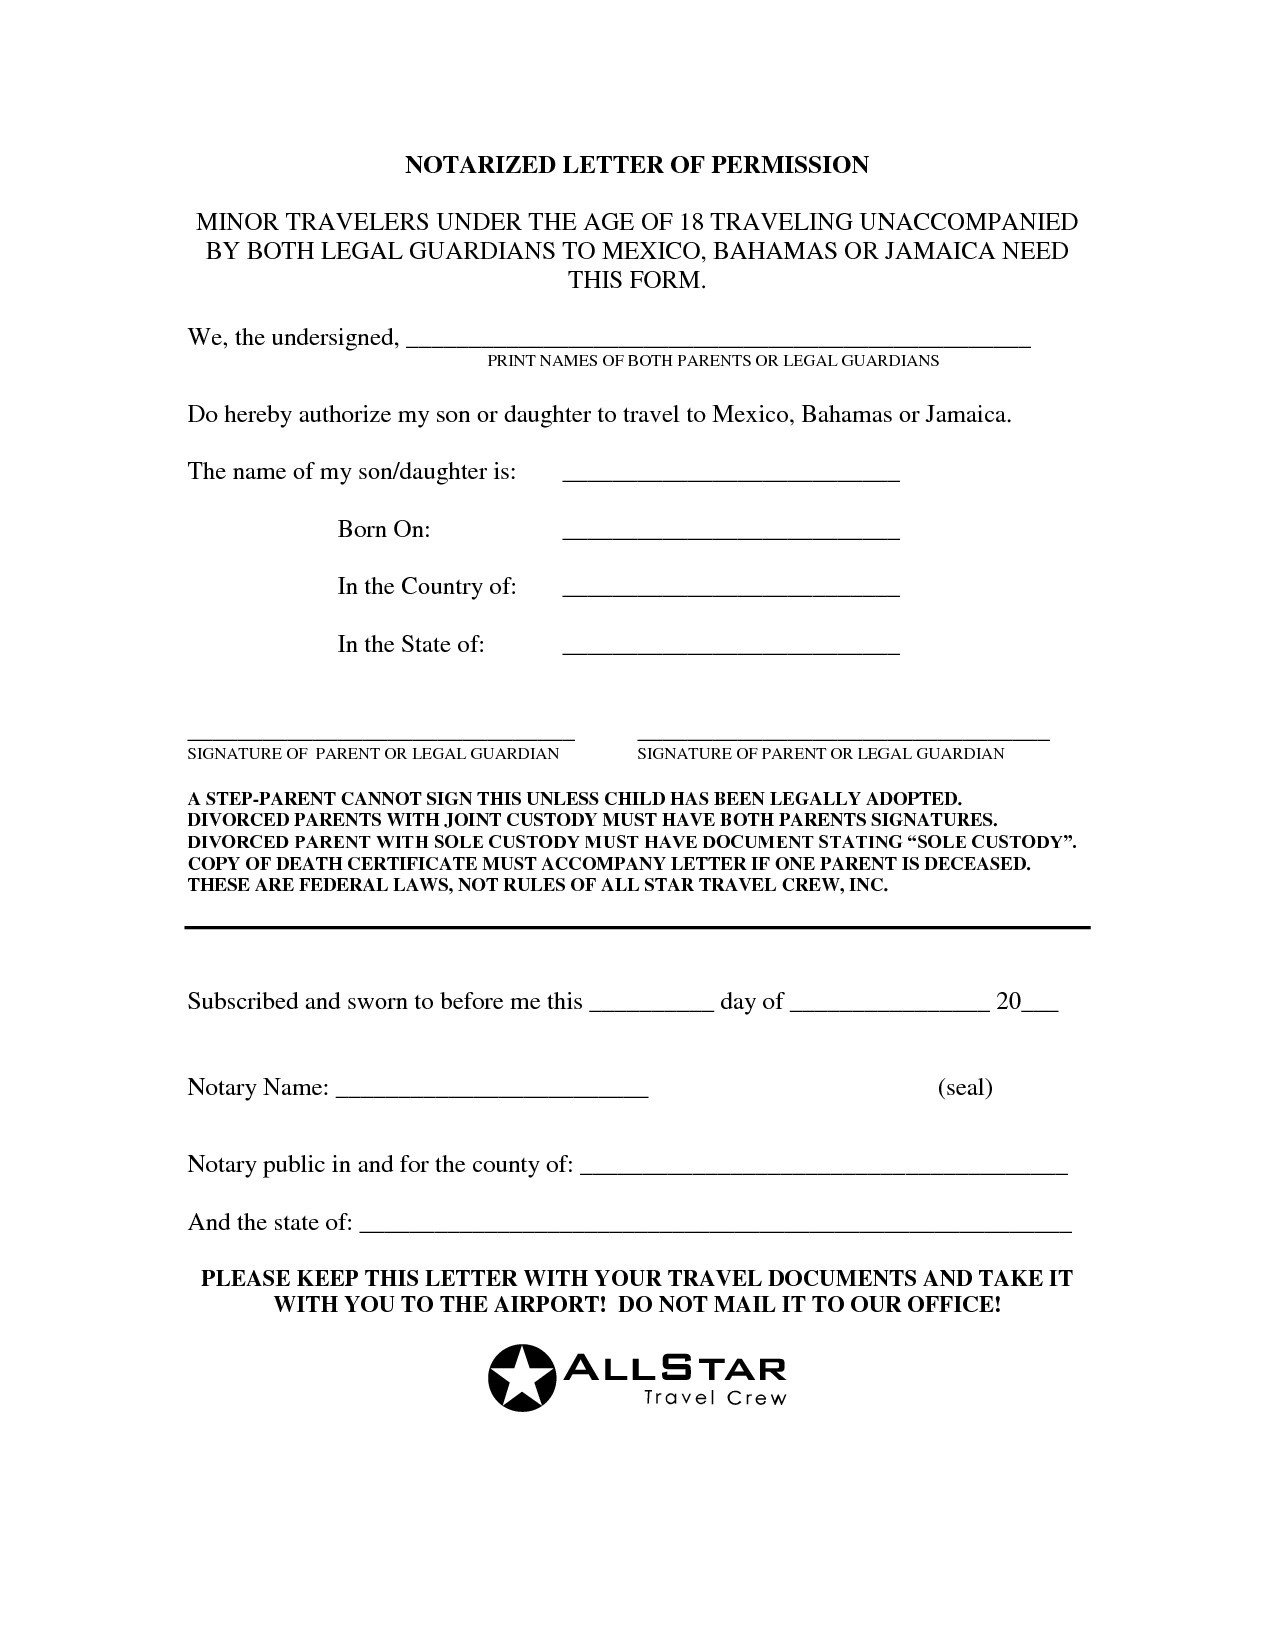 Notarized Letter Template Florida - Inspiration Example Notarized Letter Refrence Inspiration Best S